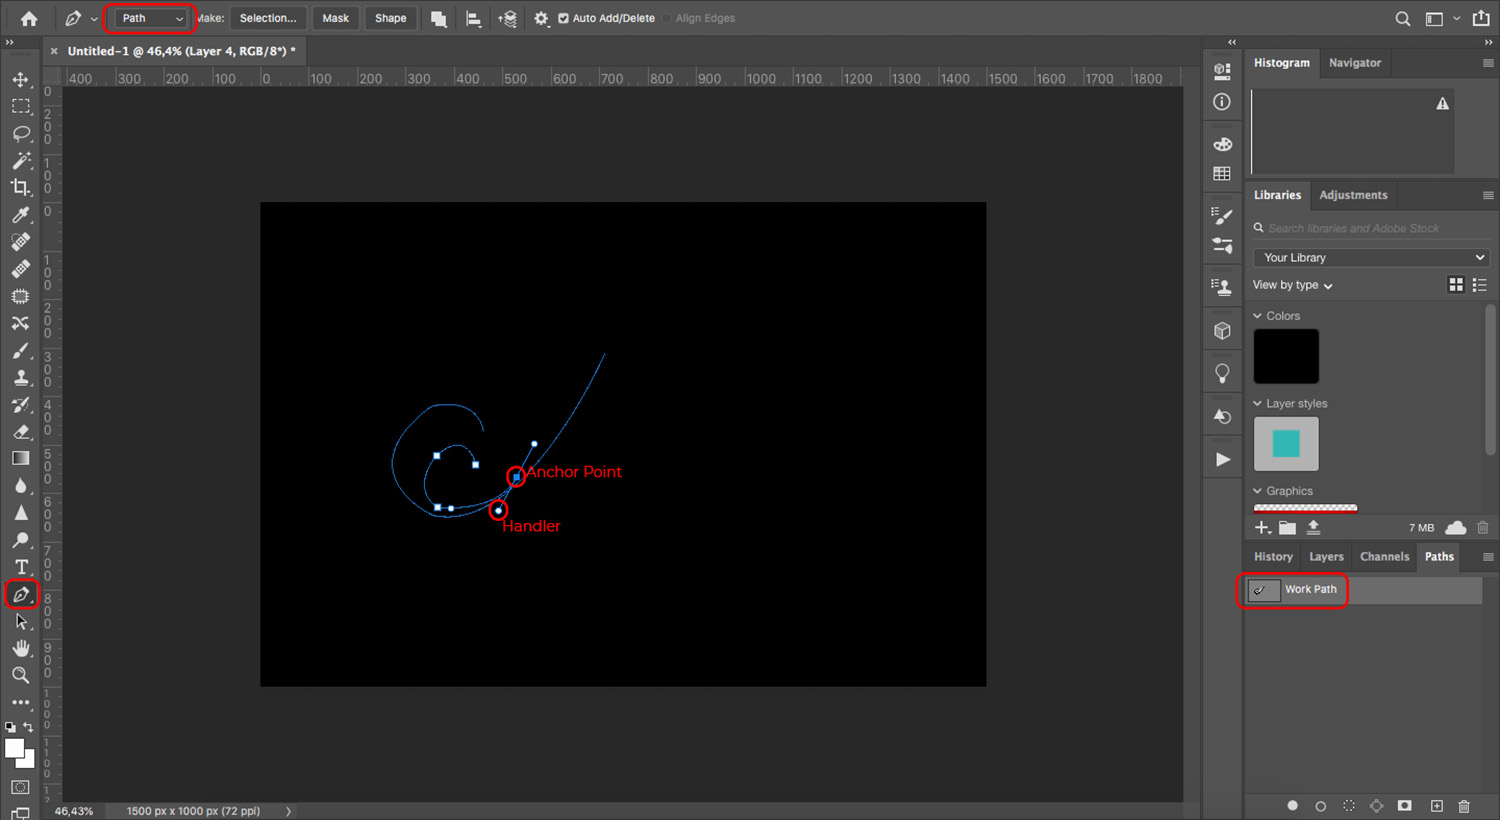 Create a watermark using the pen tool in Photoshop